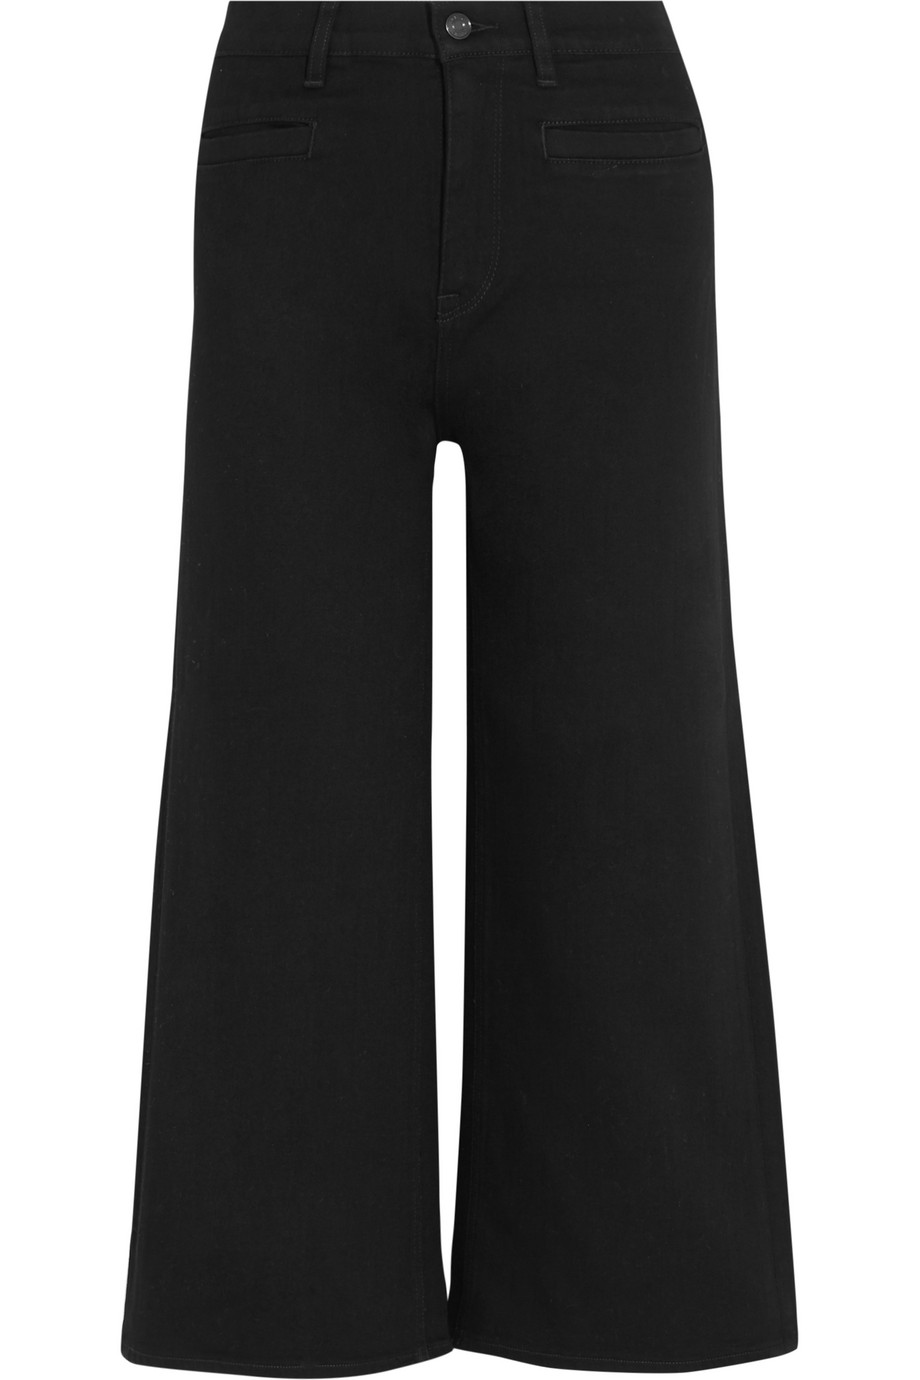 J.Crew Rayner Cropped High-Rise Wide-Leg Jeans, Black, Women's, Size: 28